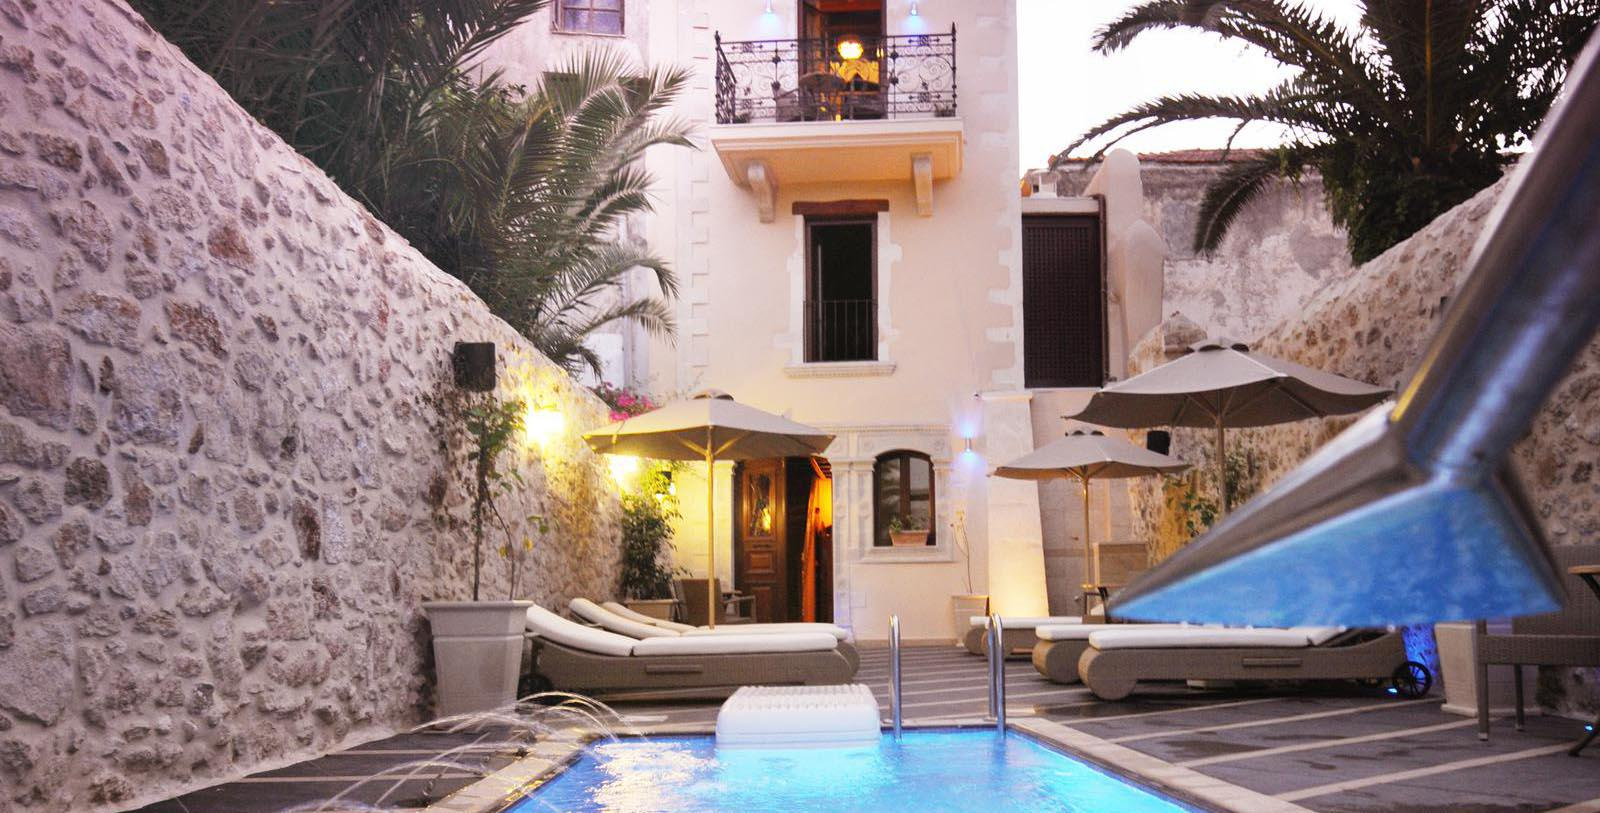 Image of hotel exterior and pool Antica Dimora Suites, 1820, Member of Historic Hotels Worldwide, in Crete, Greece, Overview